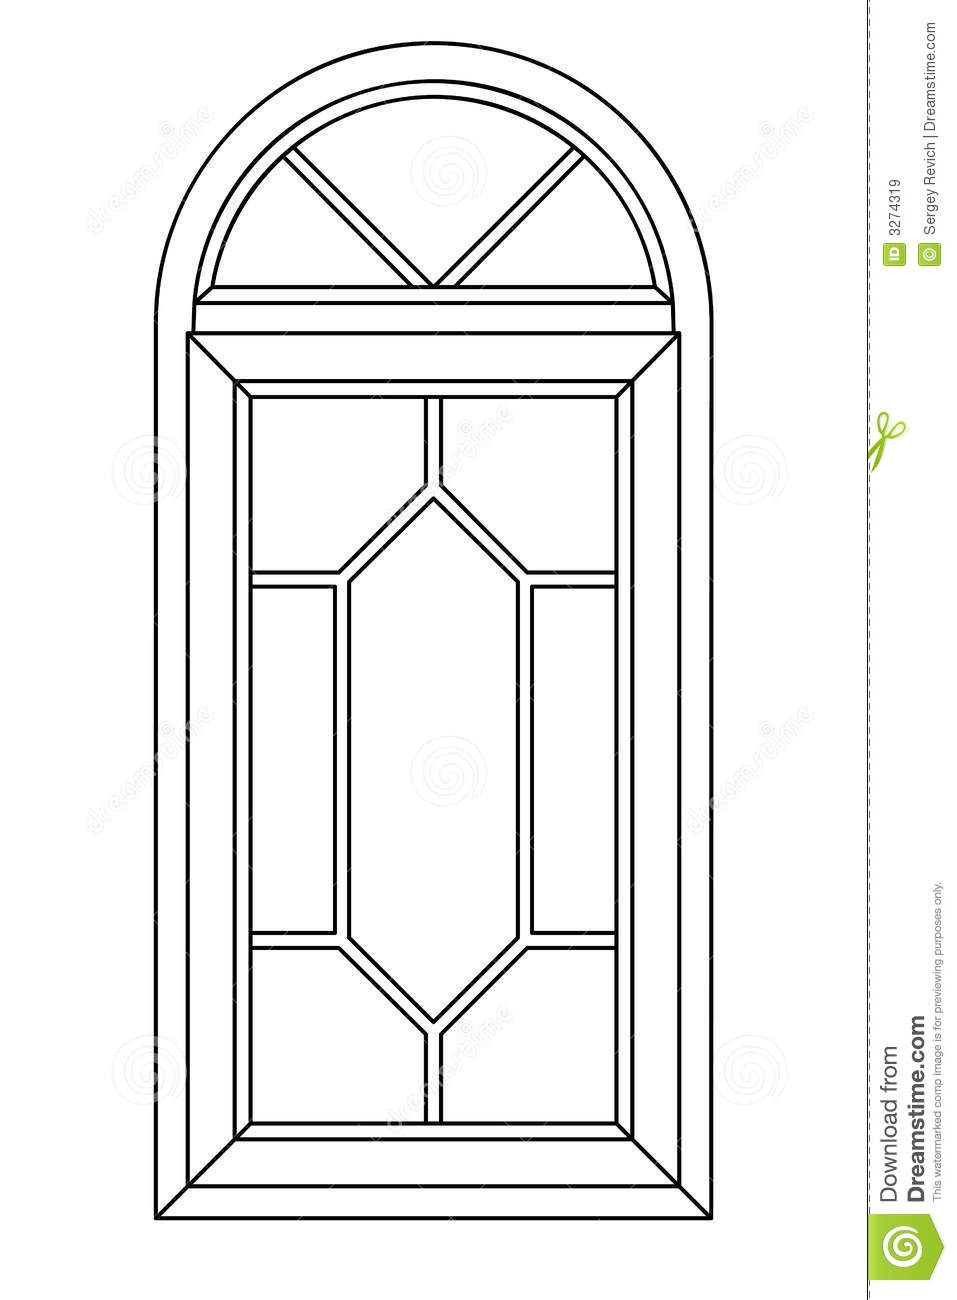 Planimetric Arch Window 3 Stock Illustration Image Of